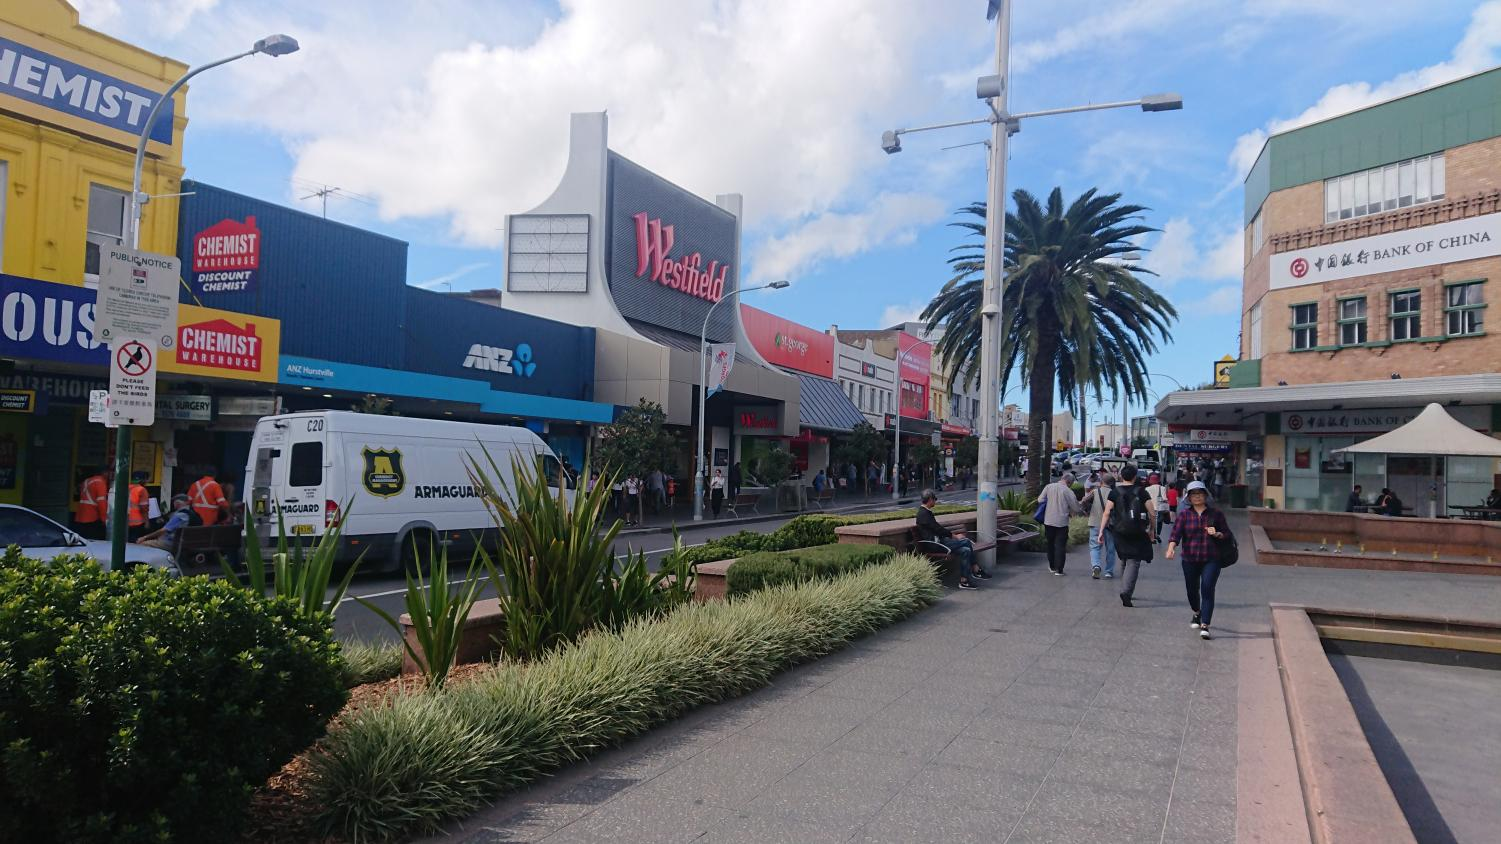 In Hurstville, the main street features a Bank of China branch as well as the usual local institutions.